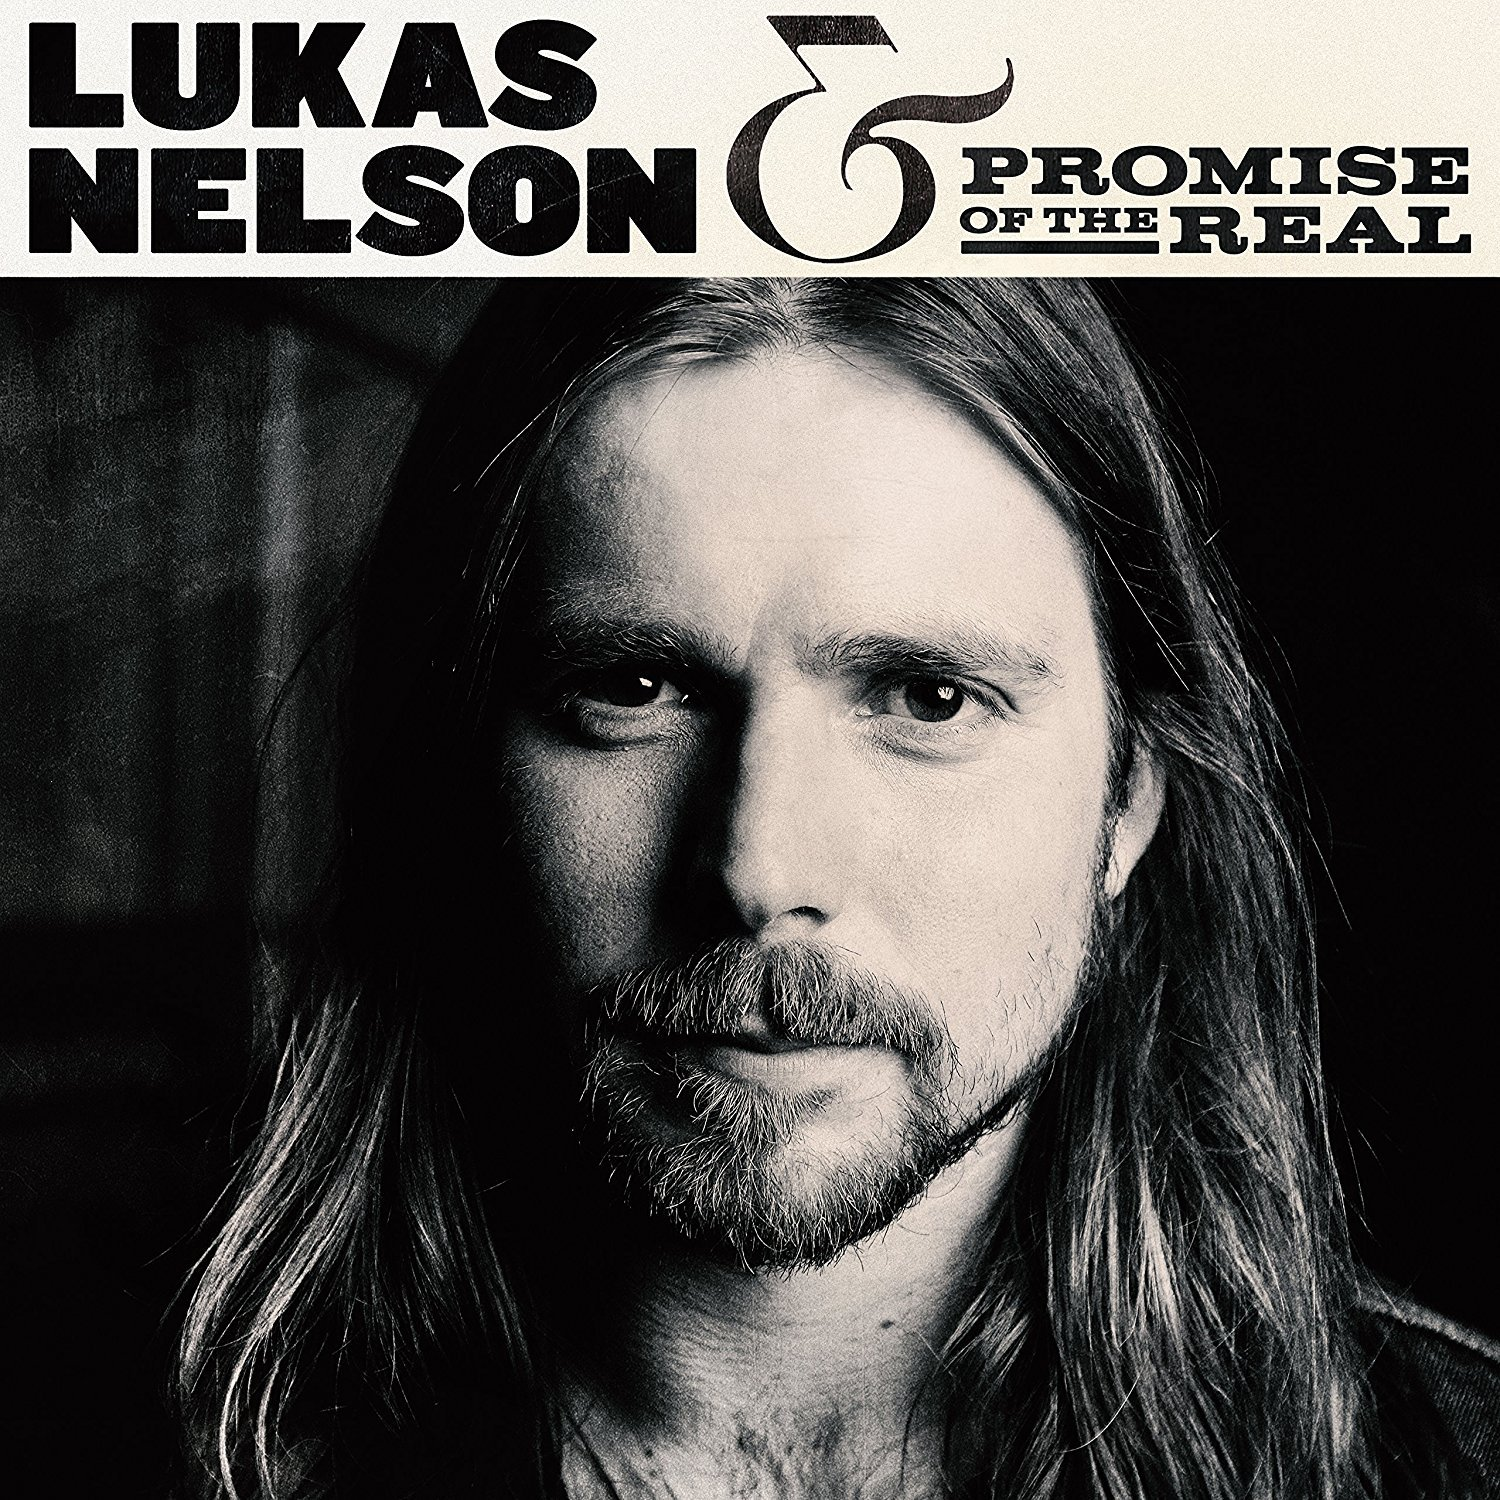 Lukas Nelson & Promise Of The Real by Fantasy